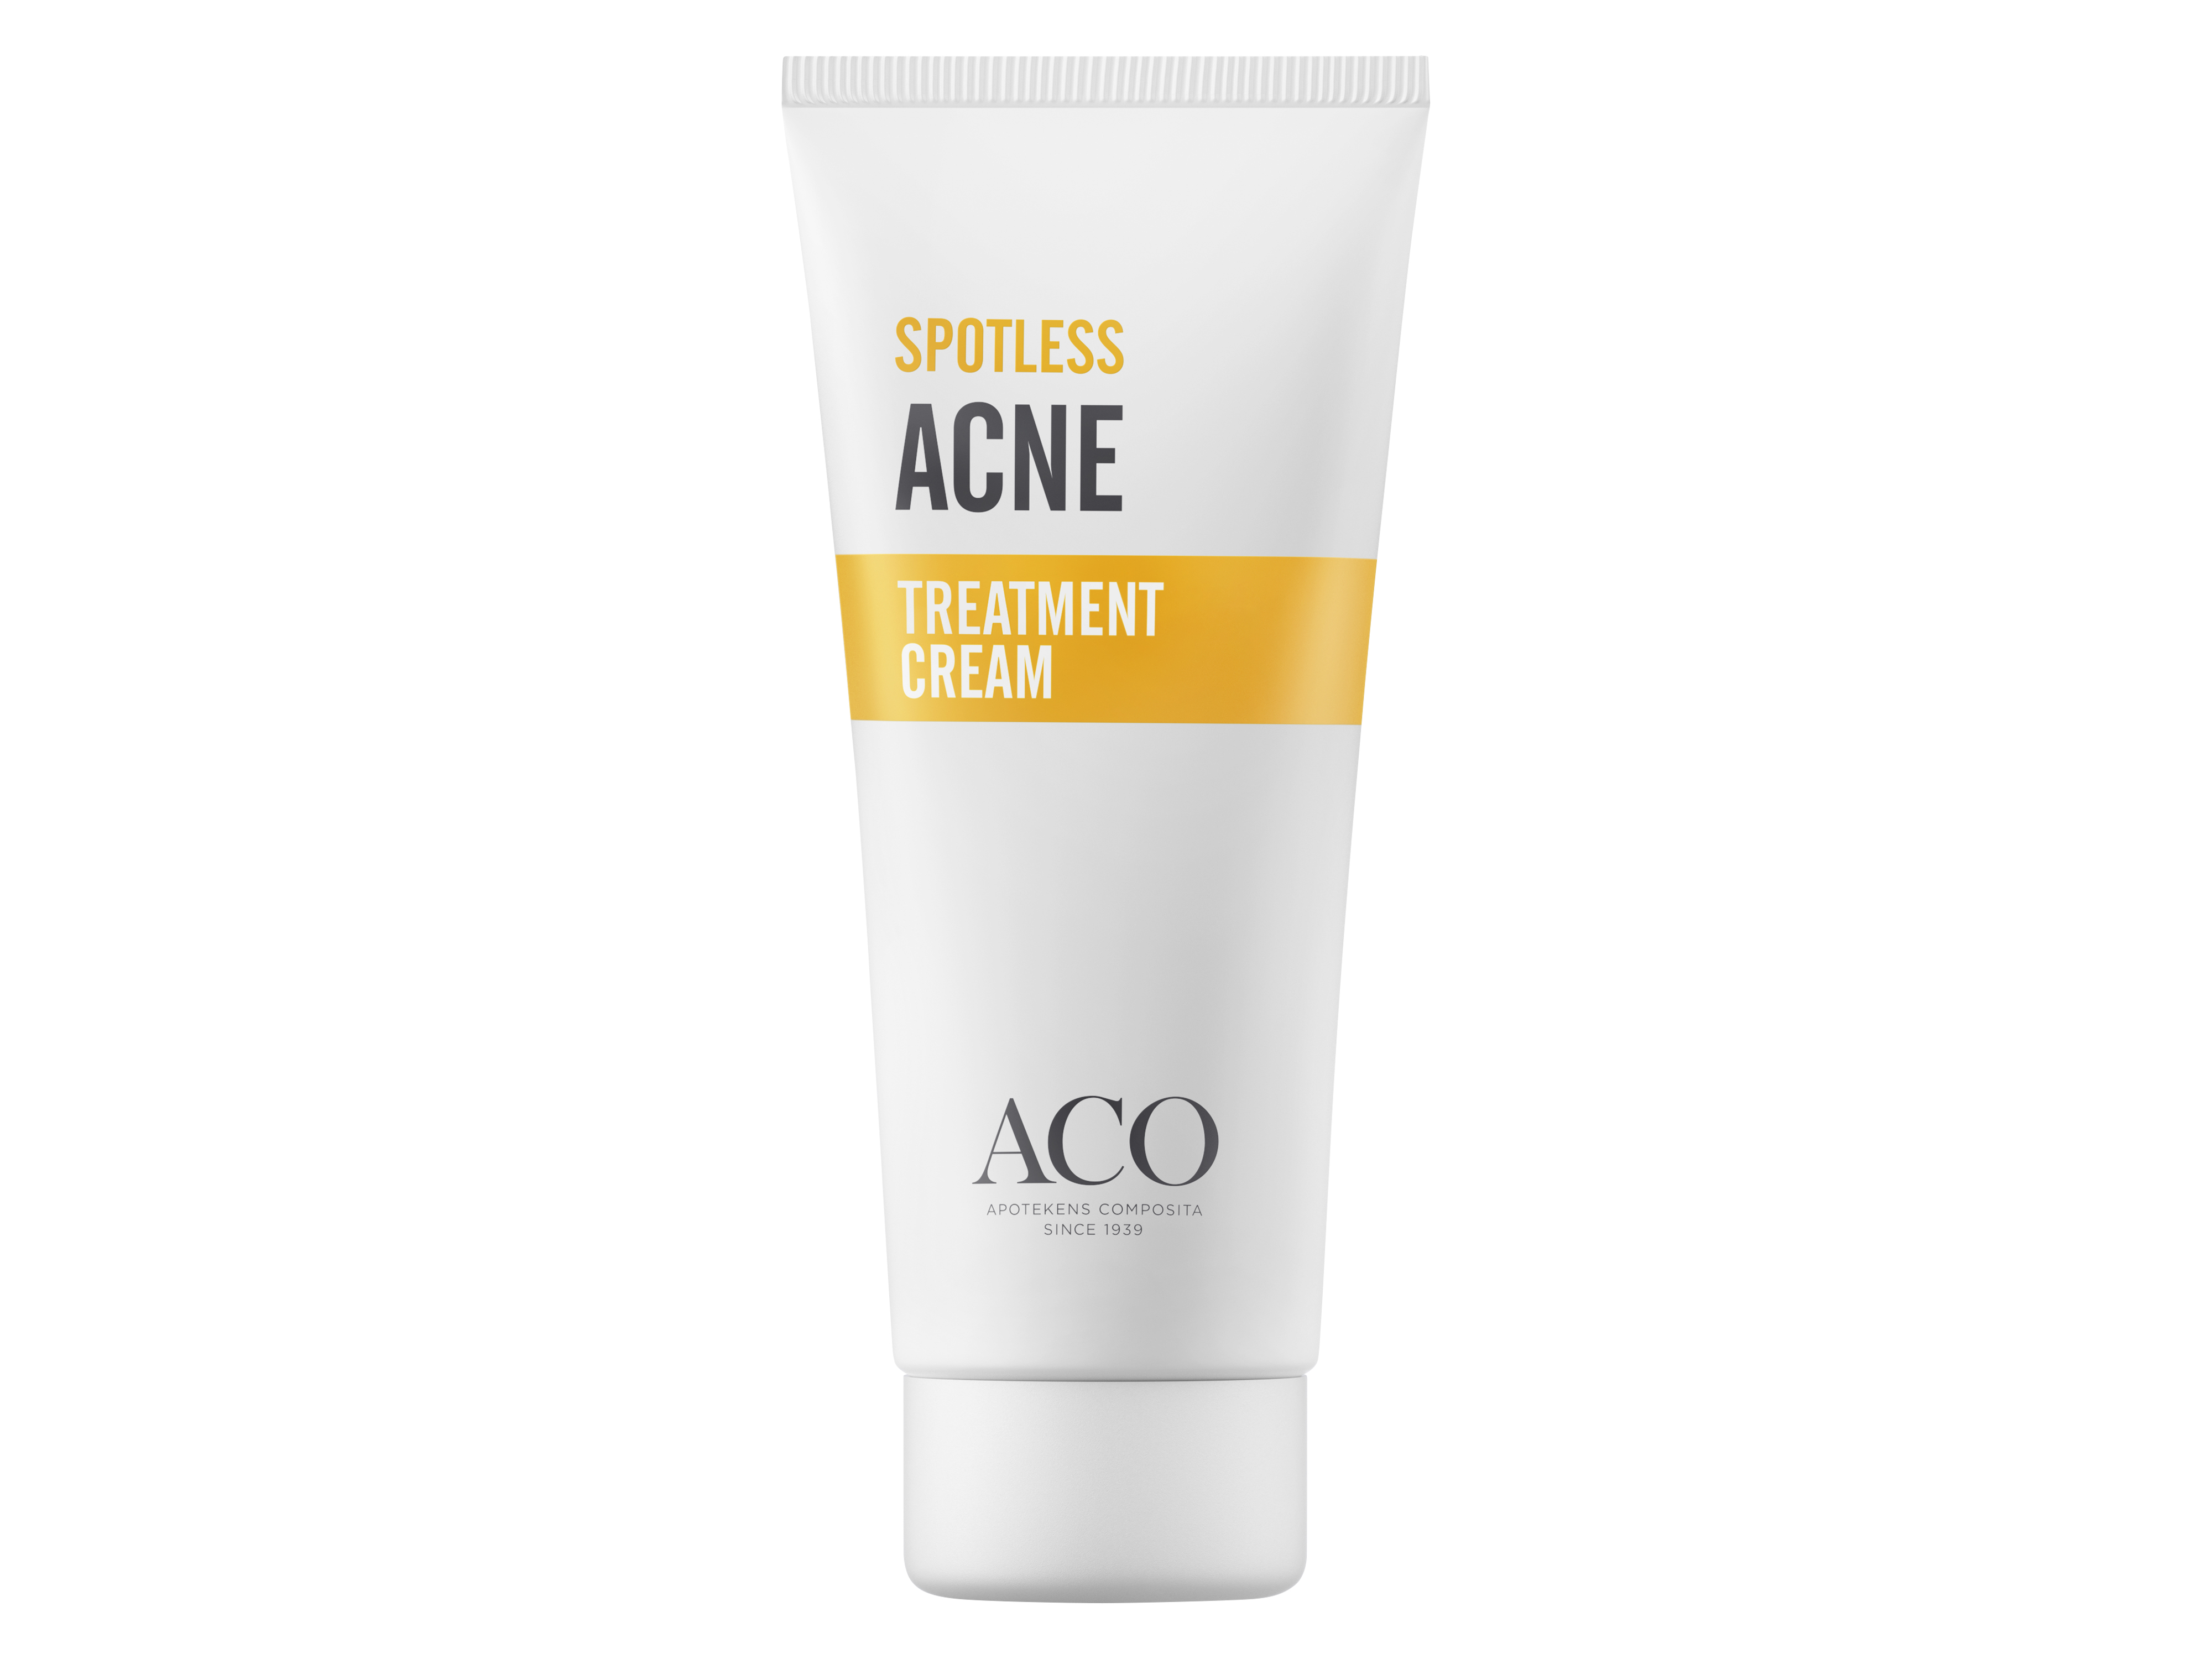 ACO Spotless Acne Skin Treatment Cream, 30 gram